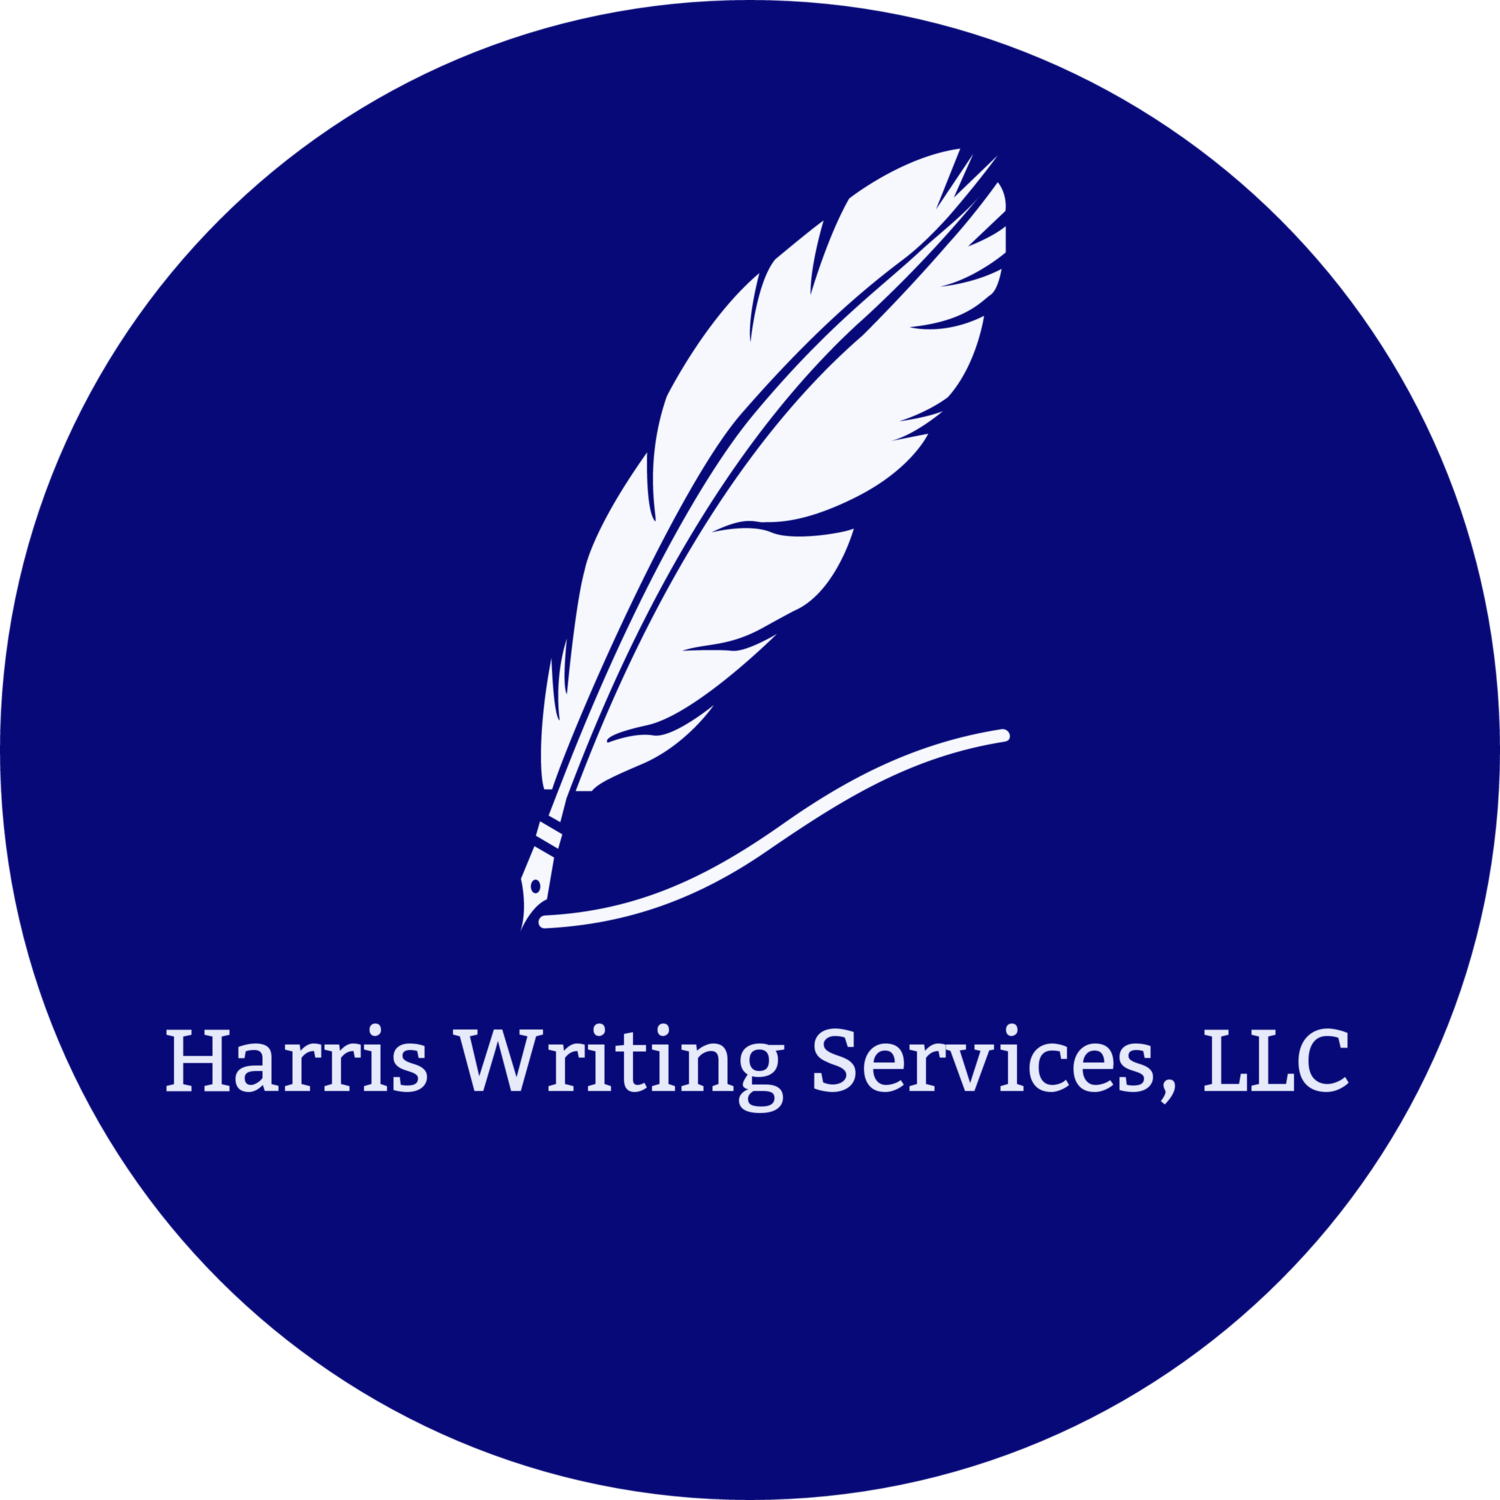 Harris Writing Services, LLC